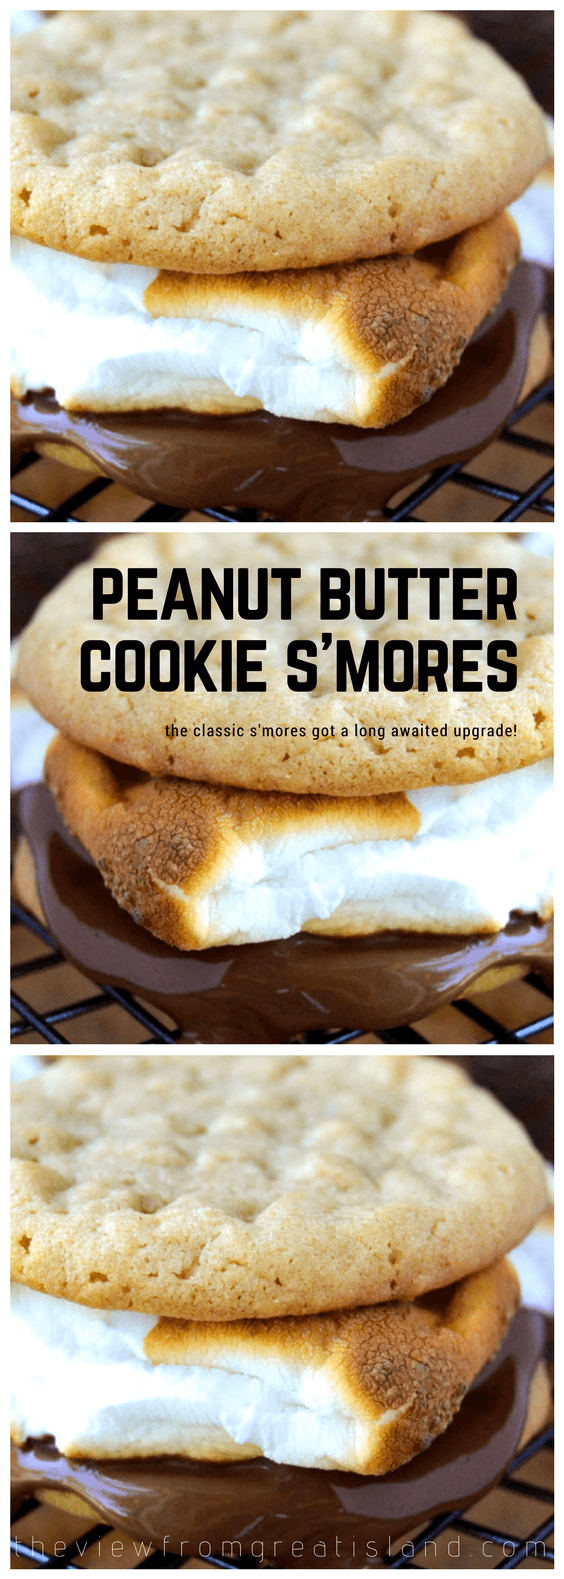 Peanut Butter Cookie S'mores ~ a better version of the classic s'more made with soft and chewy peanut butter cookies. This beloved summer dessert just got a much needed upgrade! #cookies #dessert #peanutbutter #summer #campfire #campfood #cookies #marshmallows #chocolate #peanutbuttercookie #bestsmore